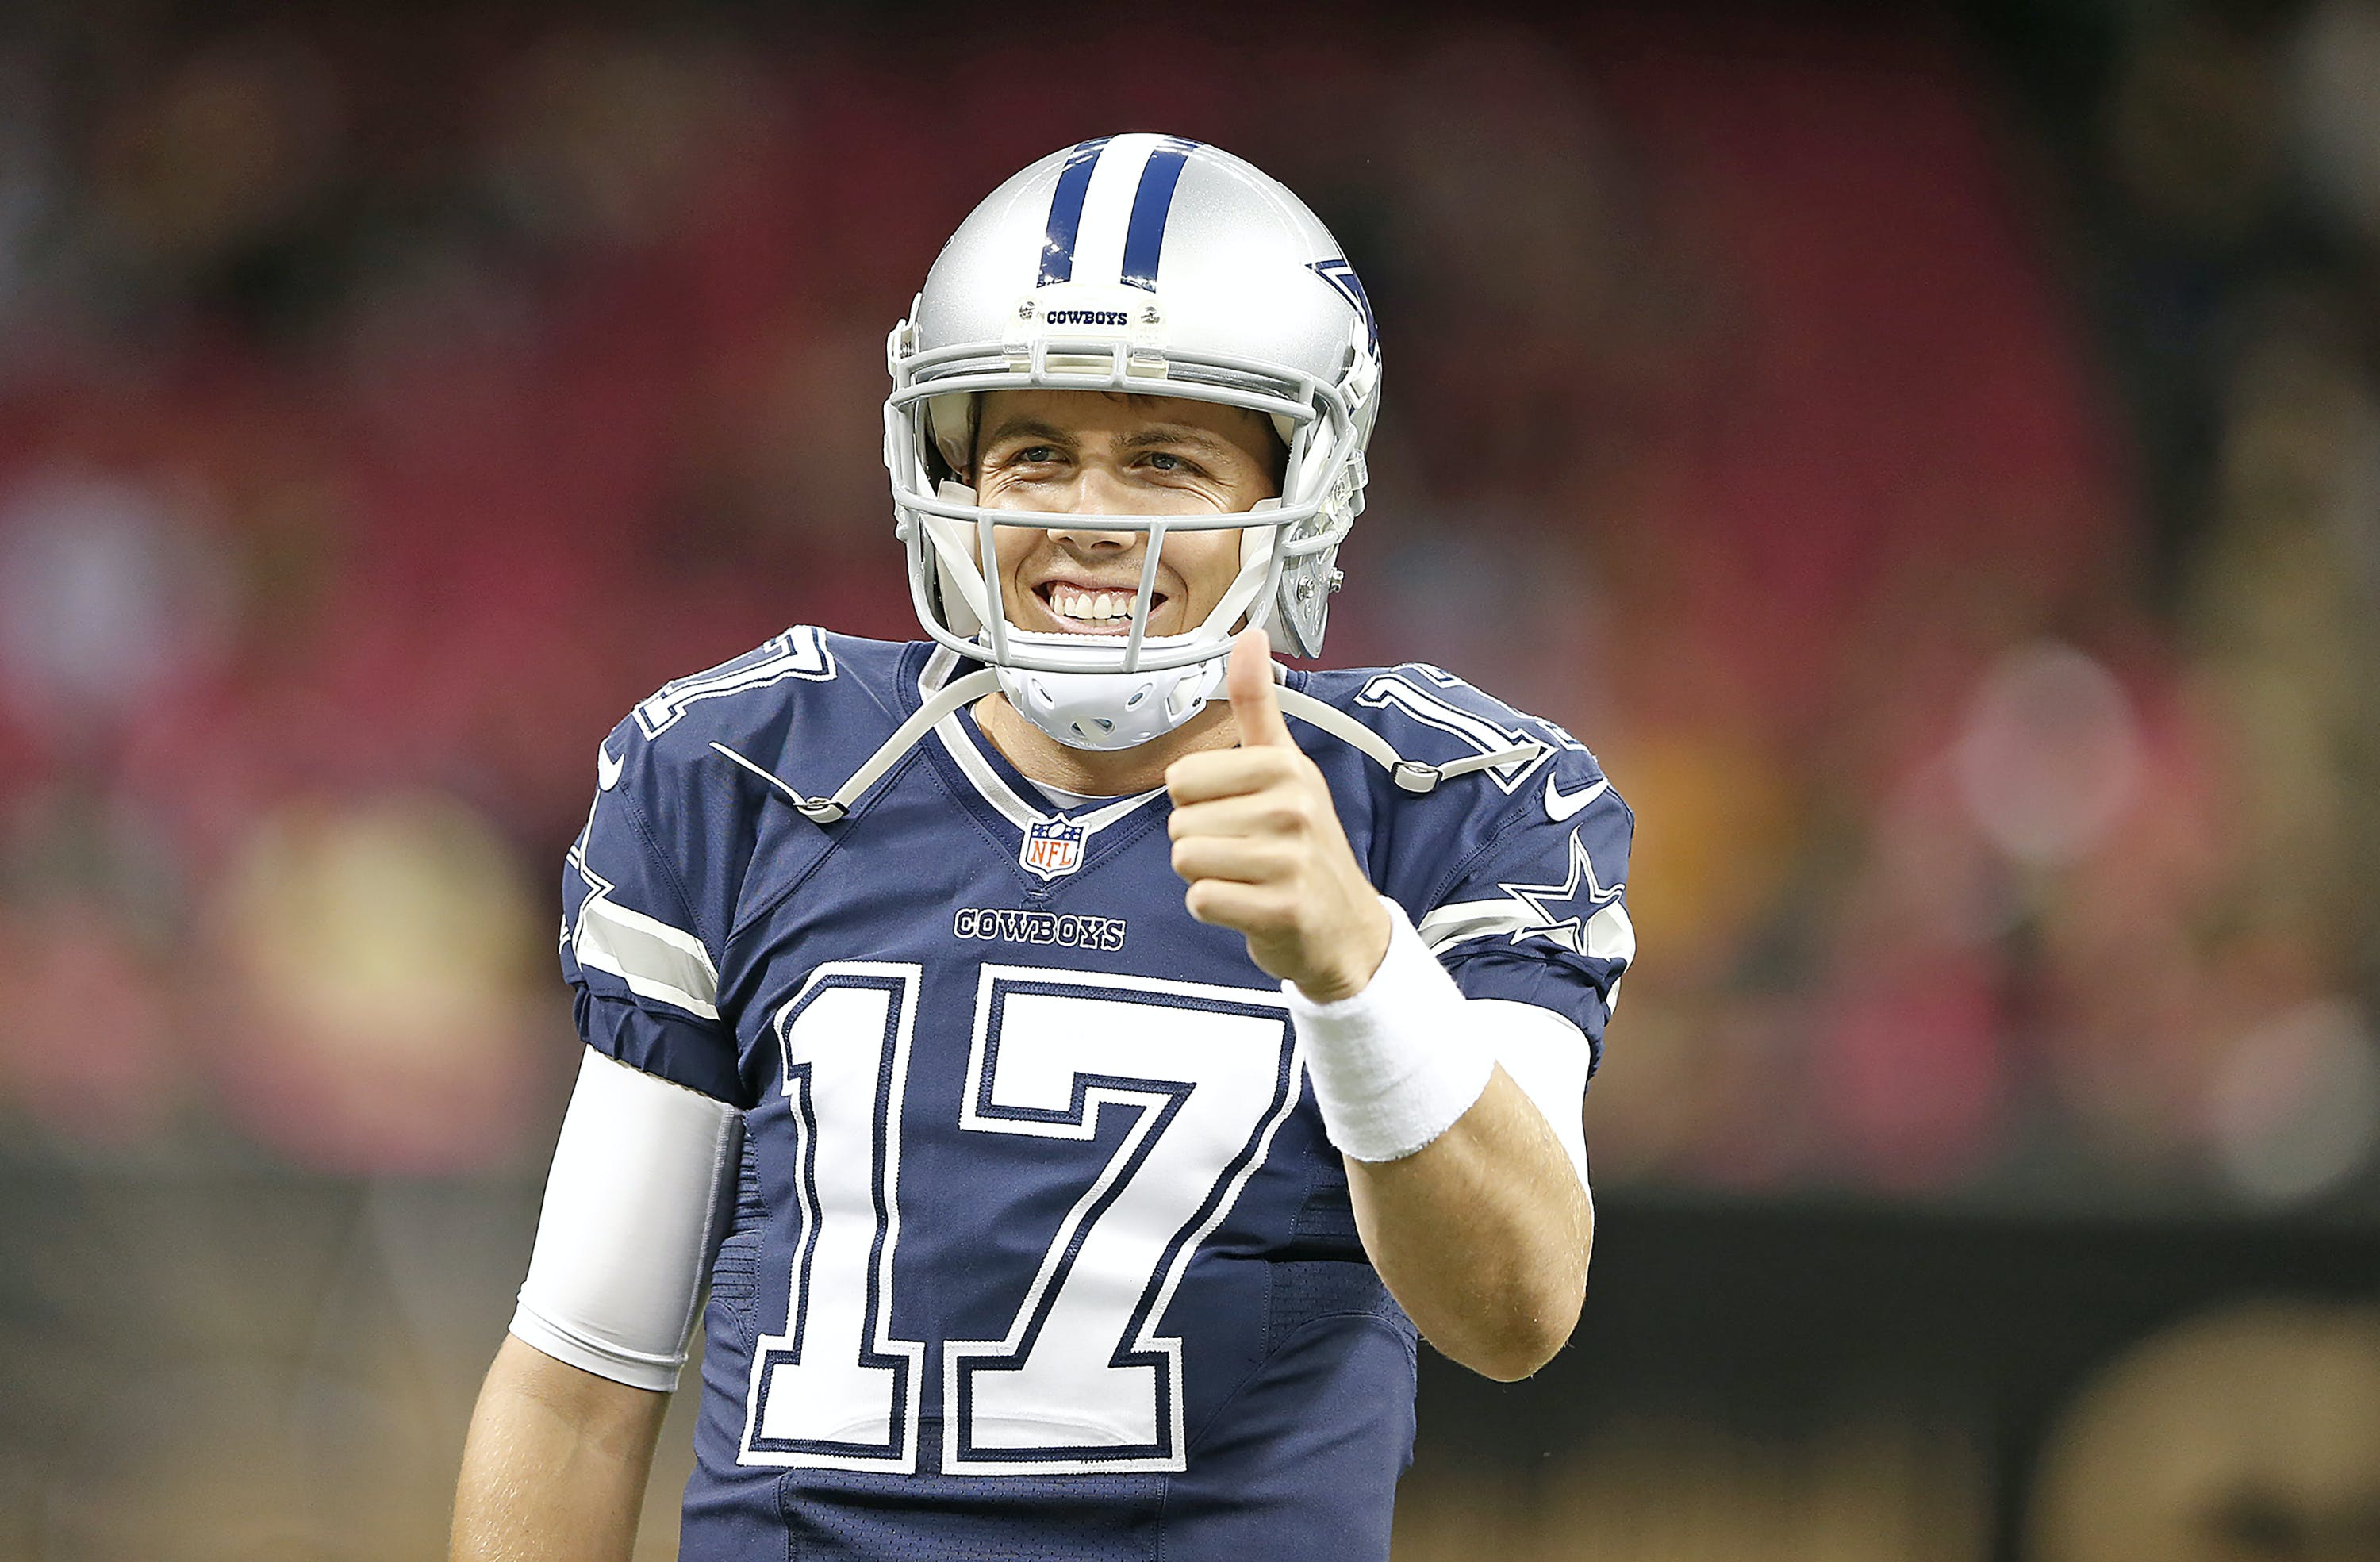 Dallas Cowboys quarterback Kellen Moore (17) gives a thumbs up before an NFL game against the New Orleans Saints at the Mercedes Benz Superdome in New Orleans, Louisiana, Sunday, October 4, 2015.   The Saints defeated the Cowboys in overtime, 26-20.  (James D. Smith via AP)